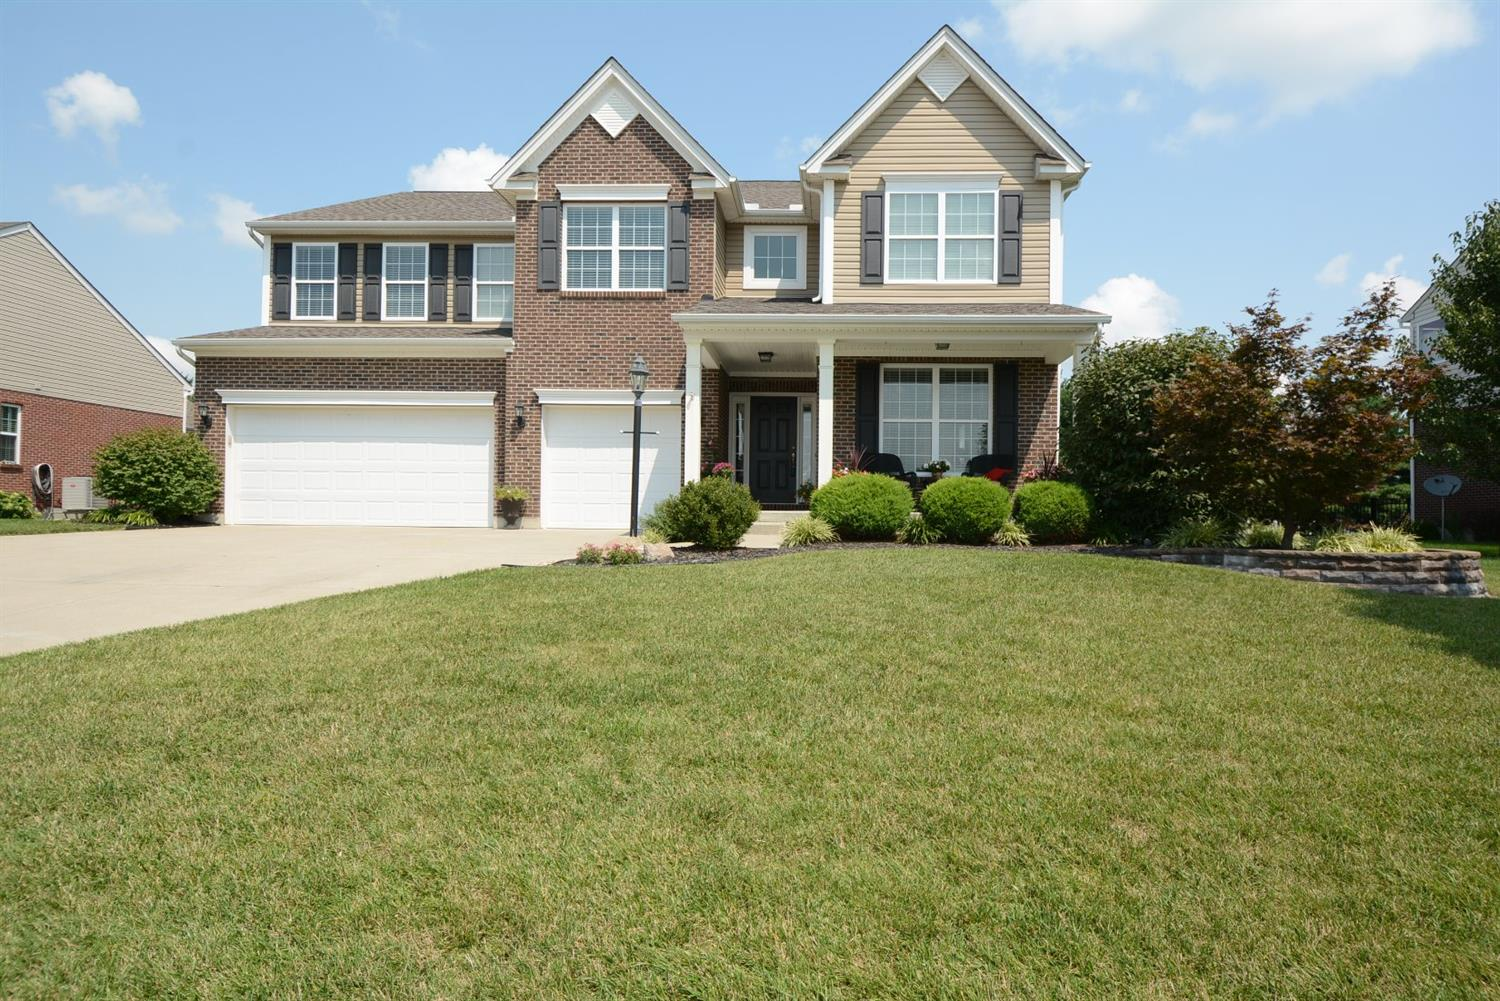 7803 Spring Garden Ct West Chester East Oh 45069 Listing